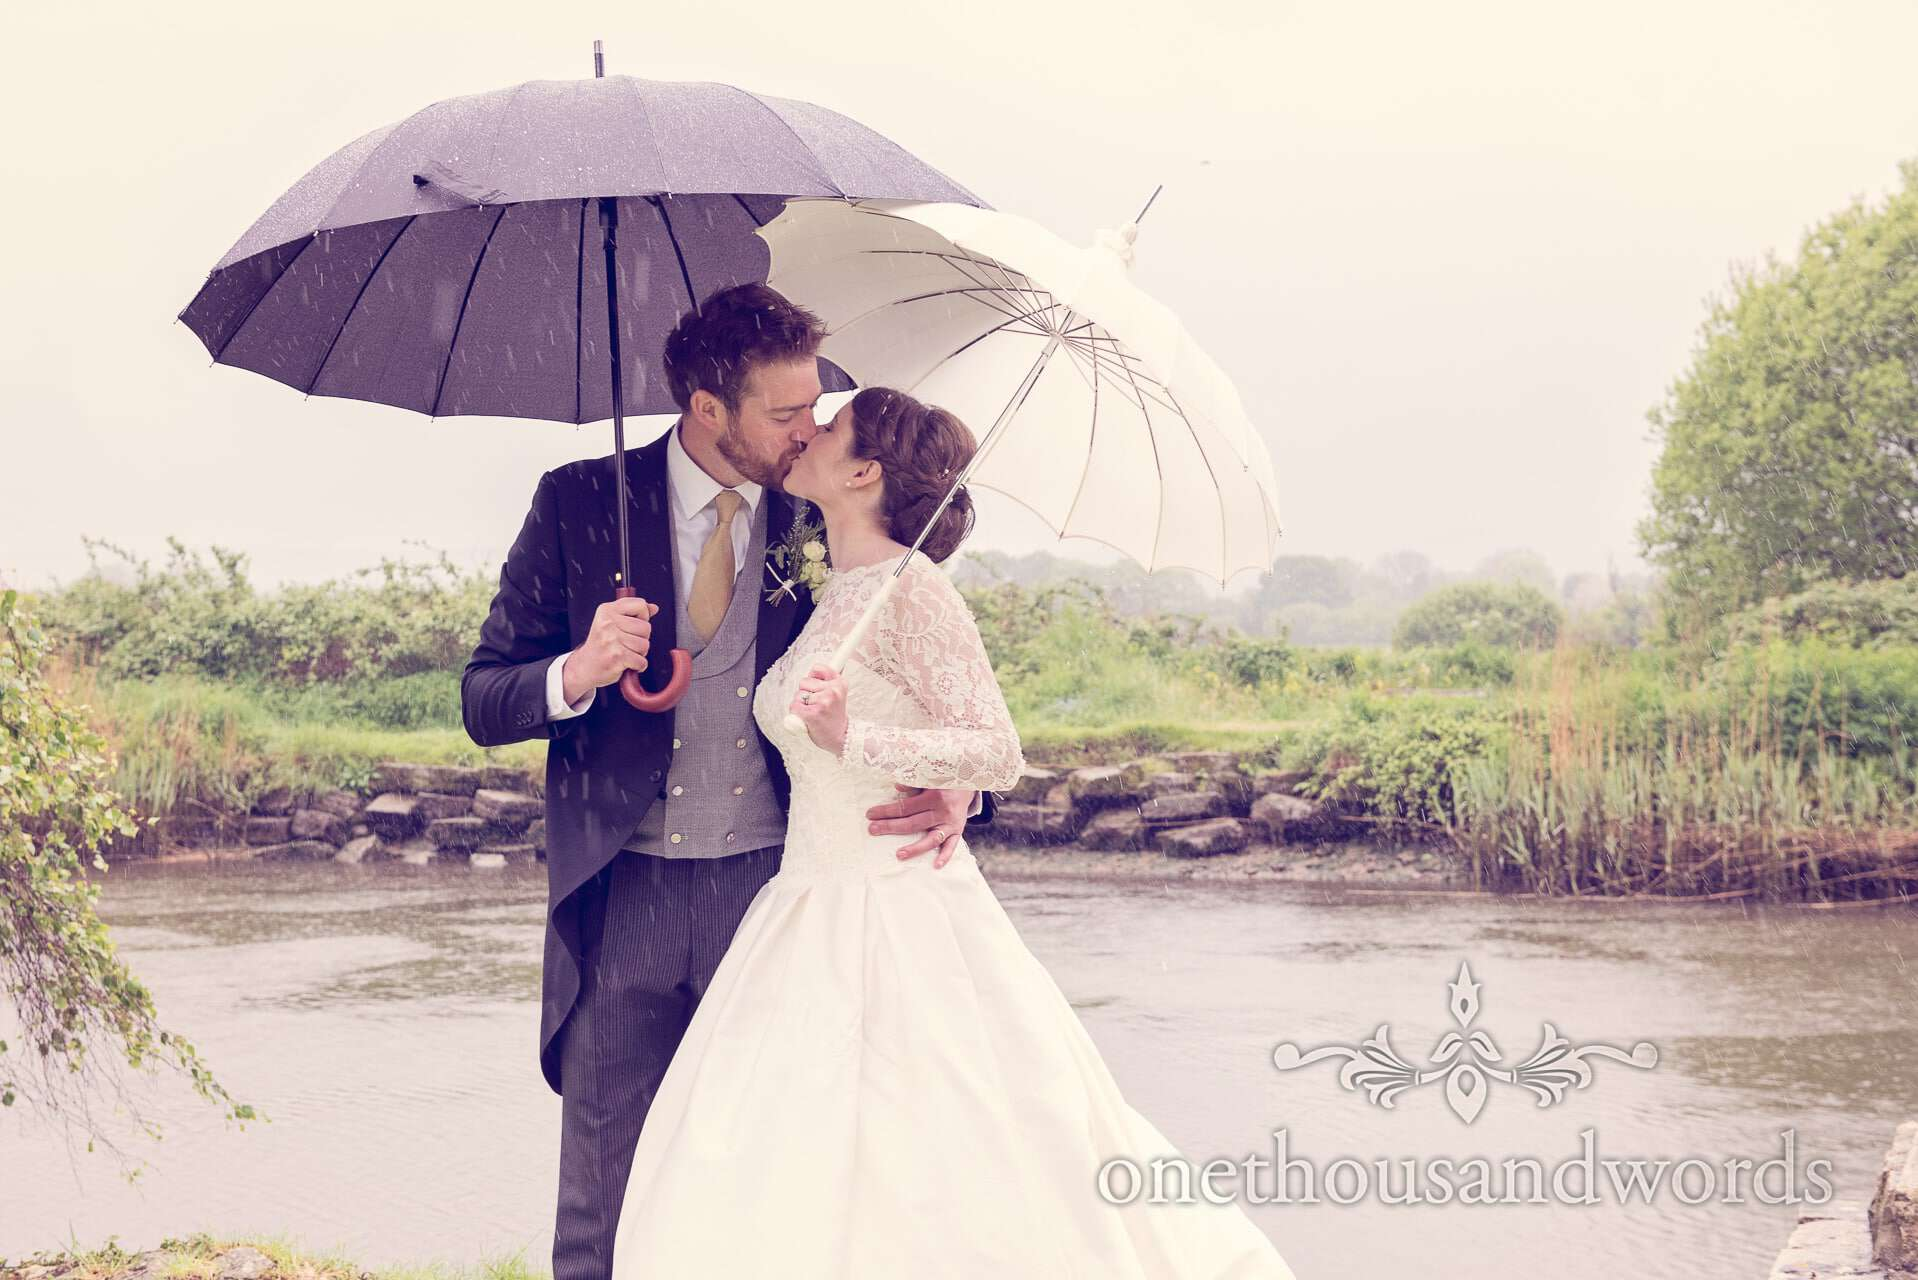 Bride and groom kiss under umbrellas in rain by Wareham river